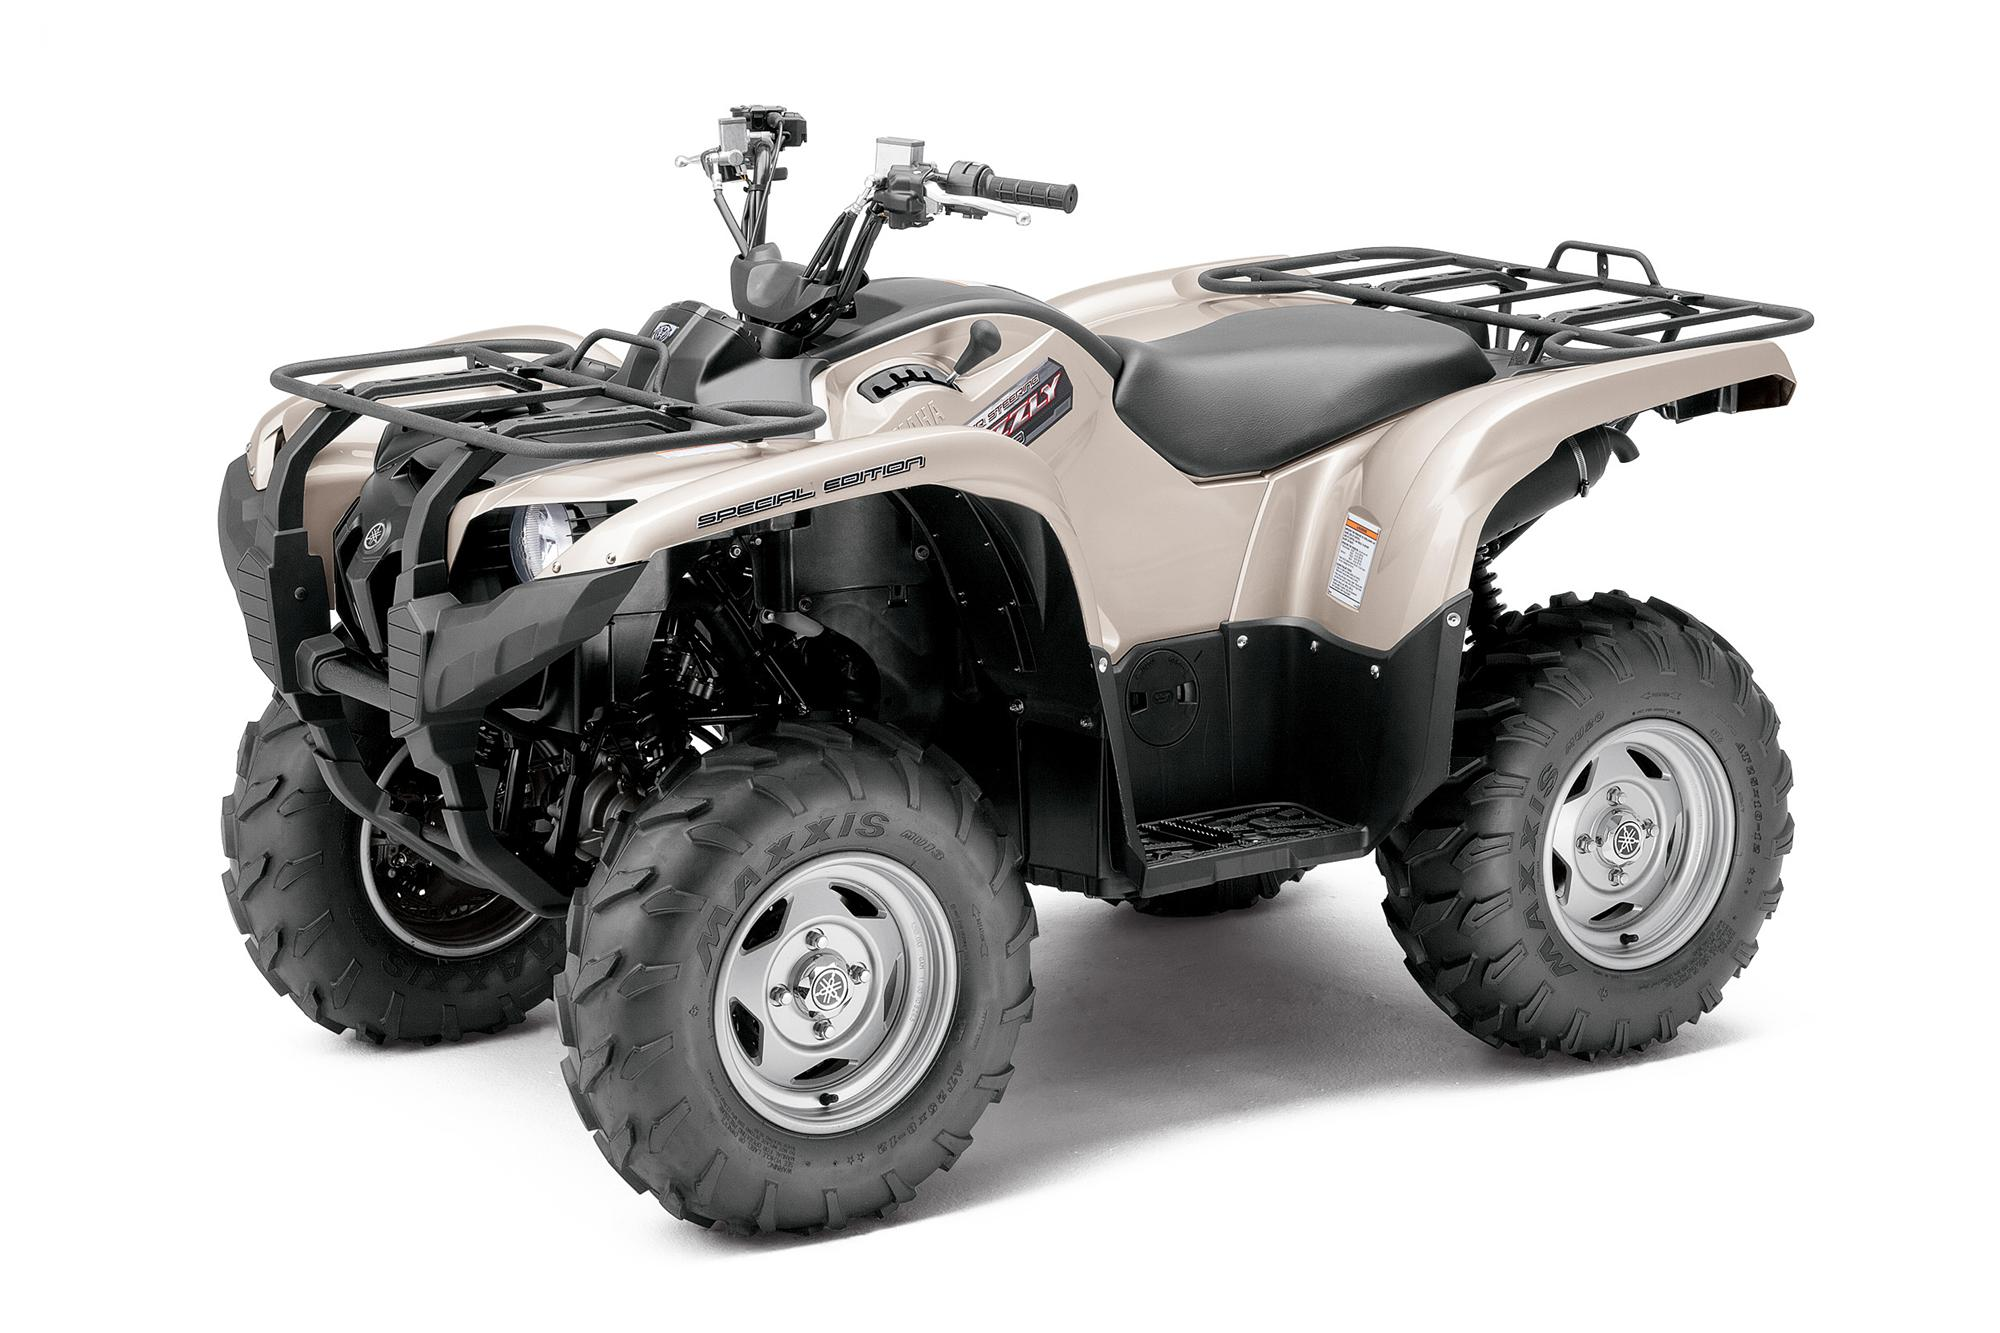 yamaha grizzly 700 fi auto 4x4 specs 2004 2005 2006. Black Bedroom Furniture Sets. Home Design Ideas